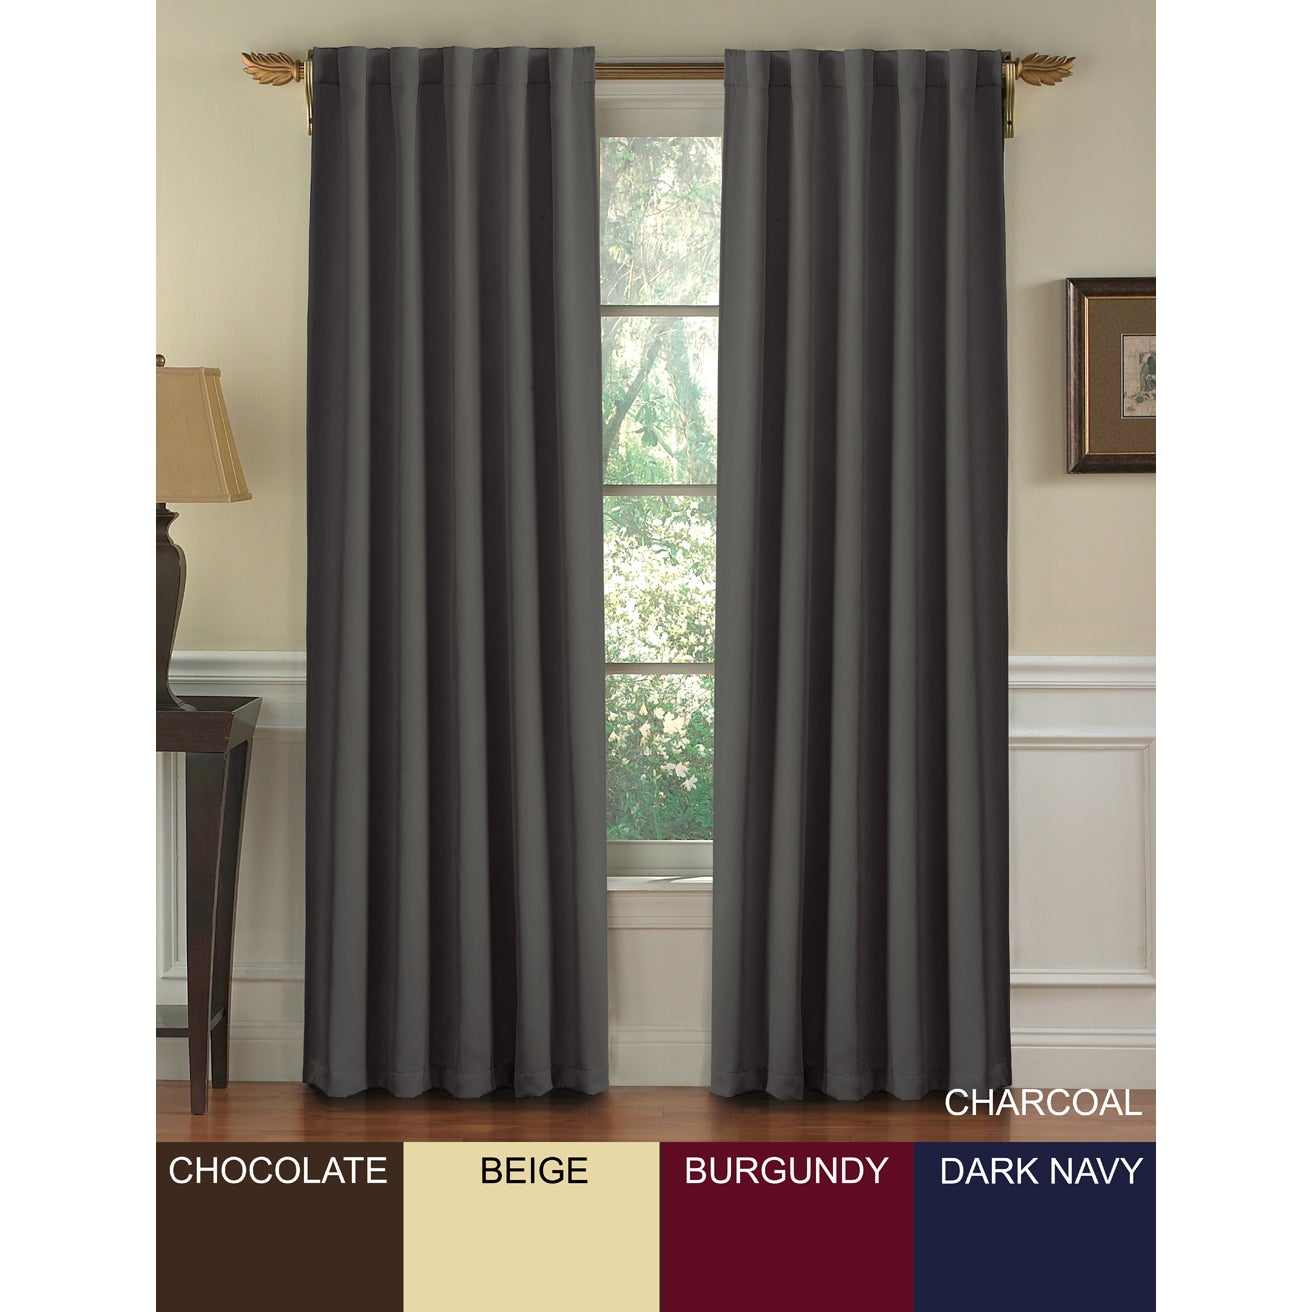 Posh Insulated Blackout 95-inch Curtain Panel Pair at Sears.com